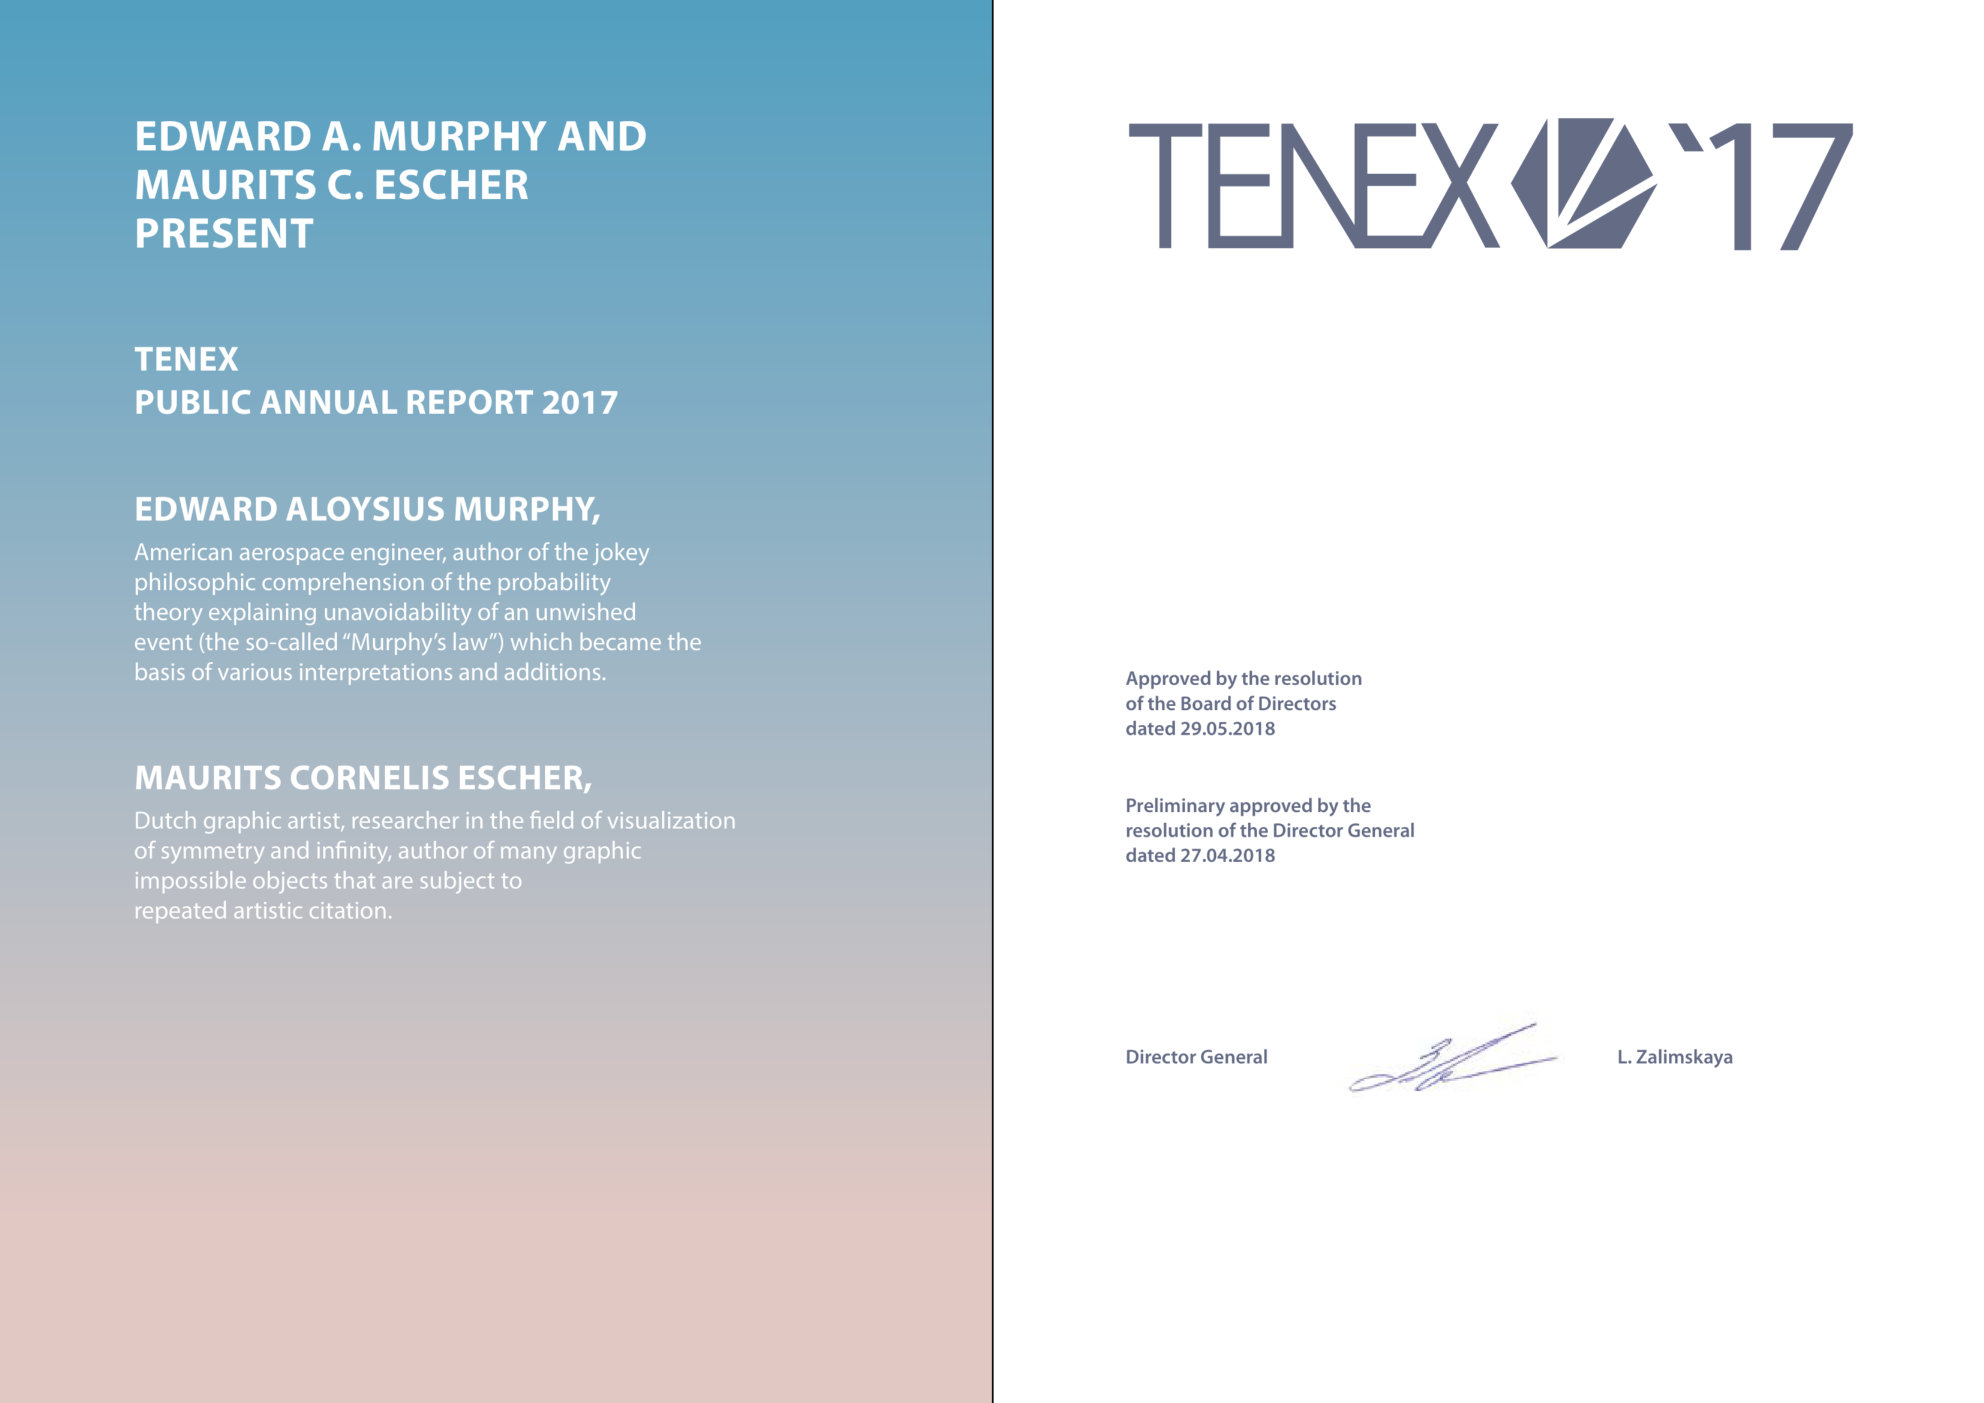 LACP 2017/18 Vision Awards Annual Report Competition | TENEX